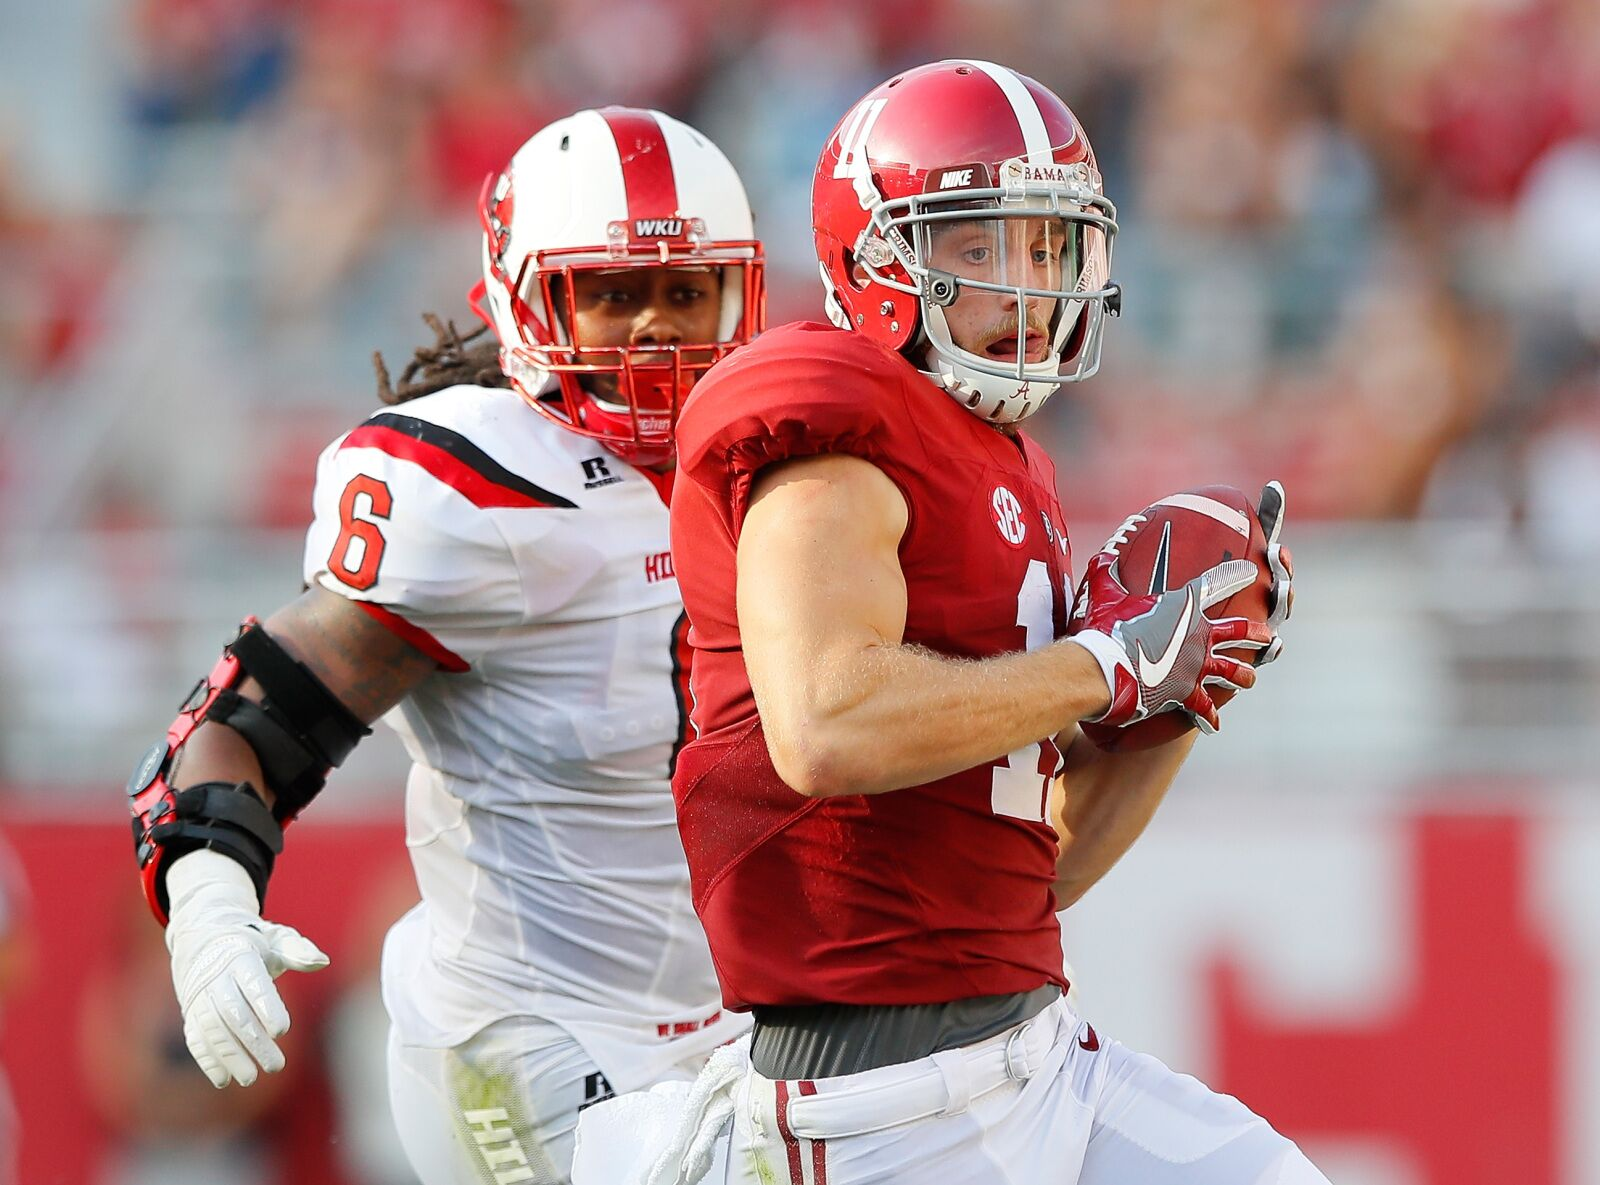 Kansas City Chiefs: Gehrig Dieter's dream is now a reality